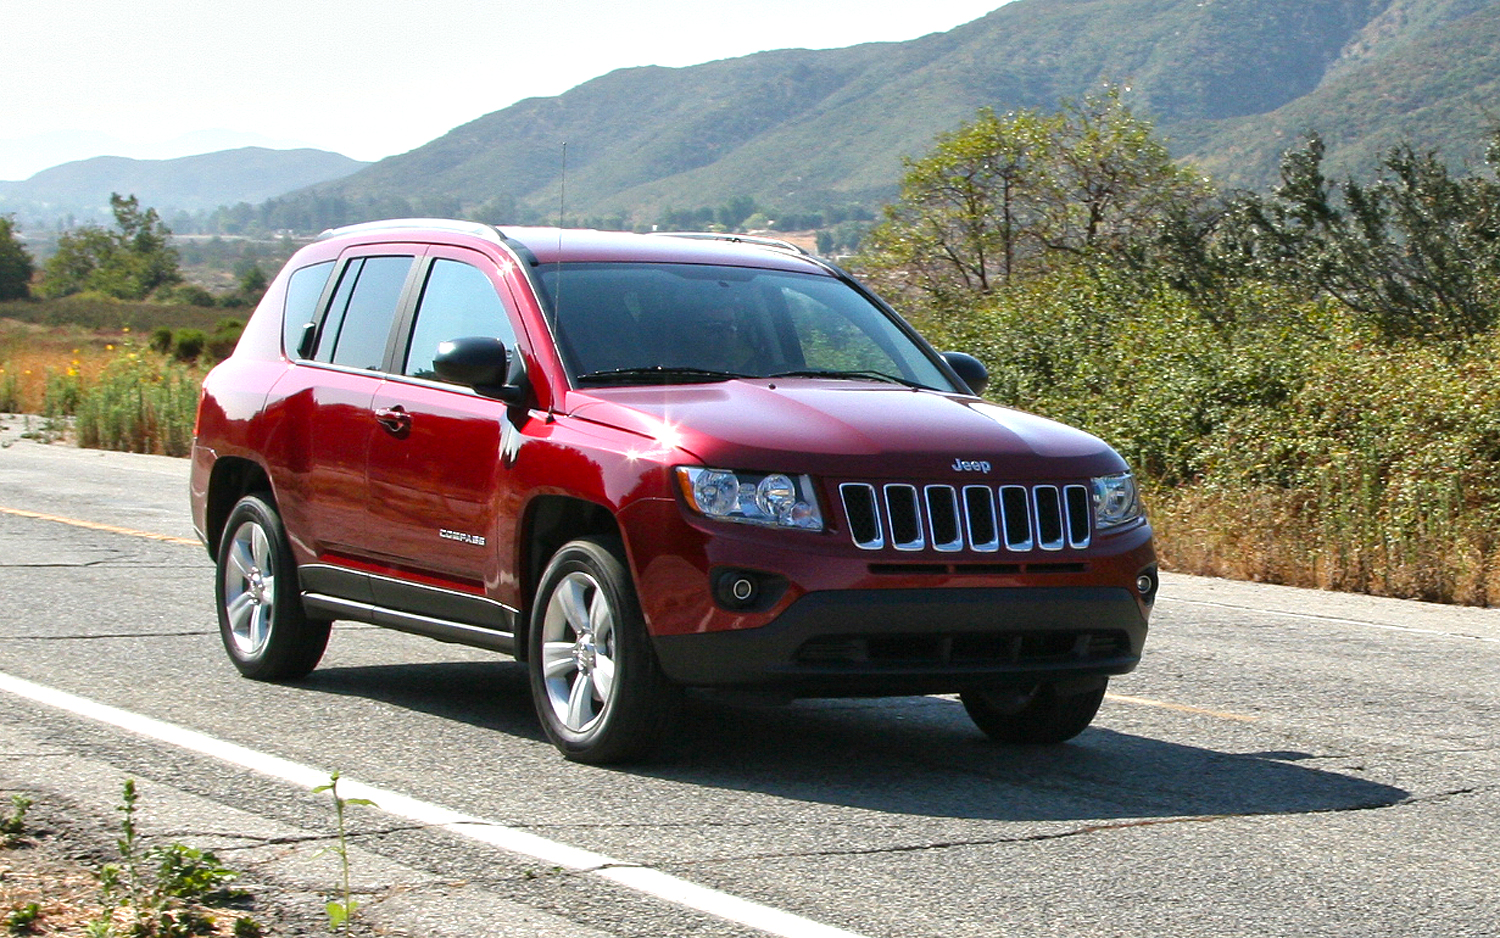 2013 Jeep Compass Information And Photos Zombiedrive Wiring Diagram For 19